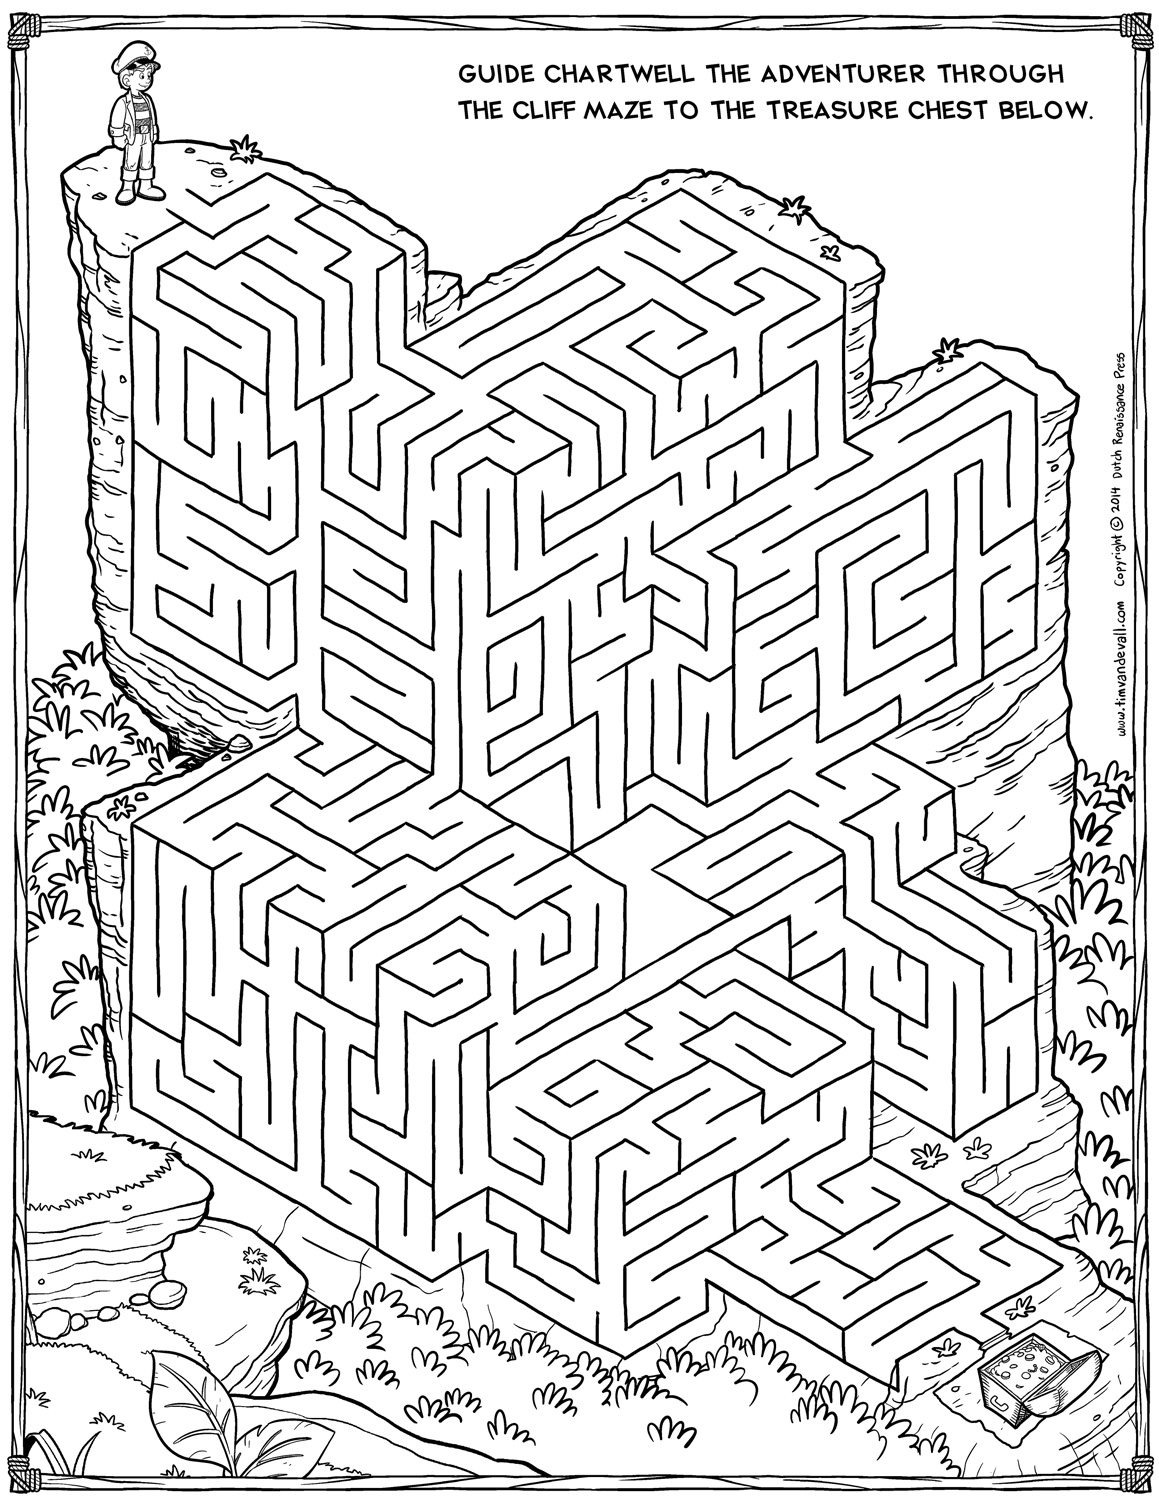 Worksheet Maze Printable Worksheets maze worksheets fireyourmentor free printable 5 best images of mazes for adults adult worksheets